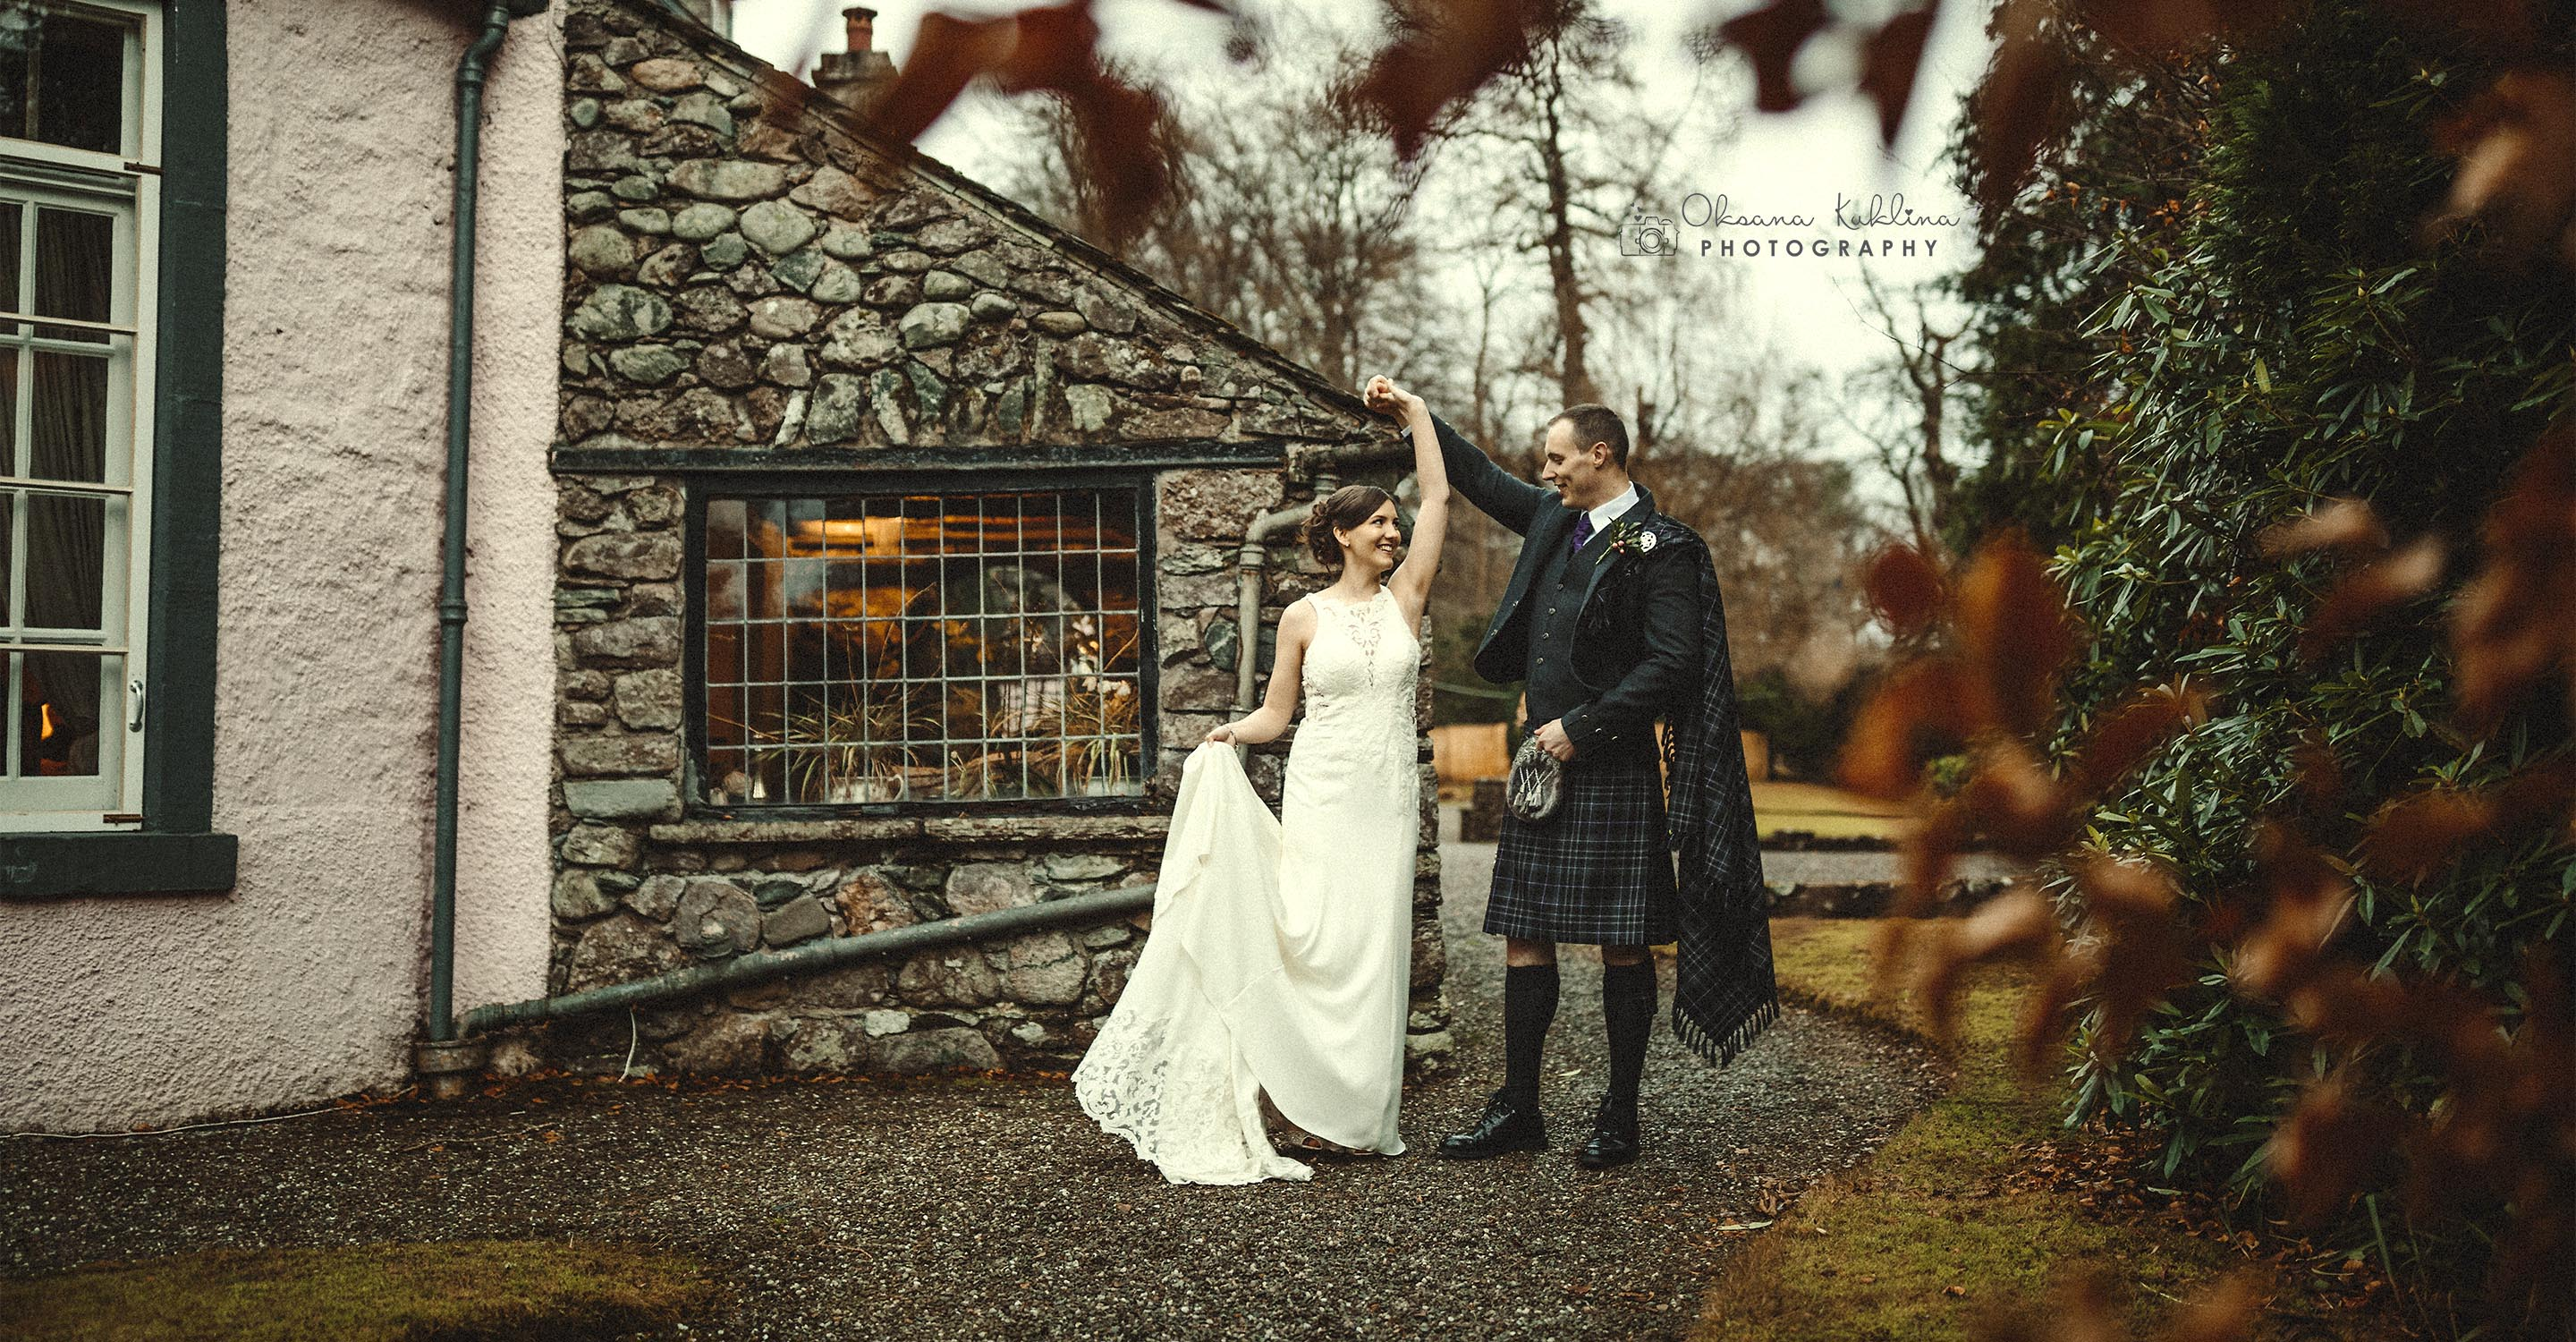 Roman Camp wedding photographer - Scottish romantic wedding in Callander -  Scotland winter wedding